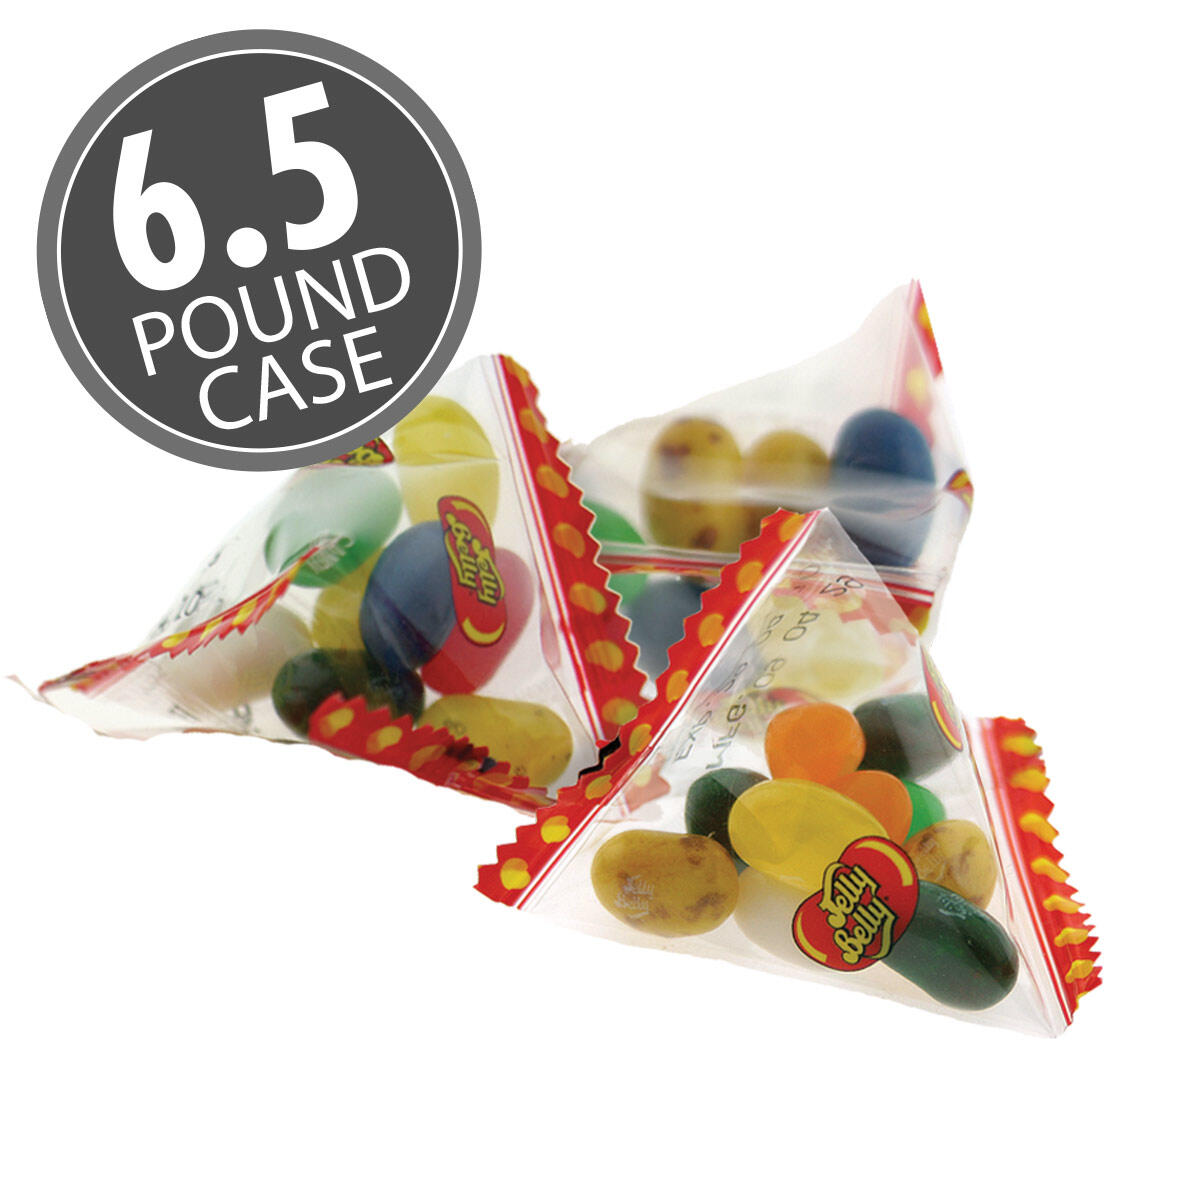 10 Assorted Jelly Bean Flavors - Pyramid Bags - 6.5 lb Case